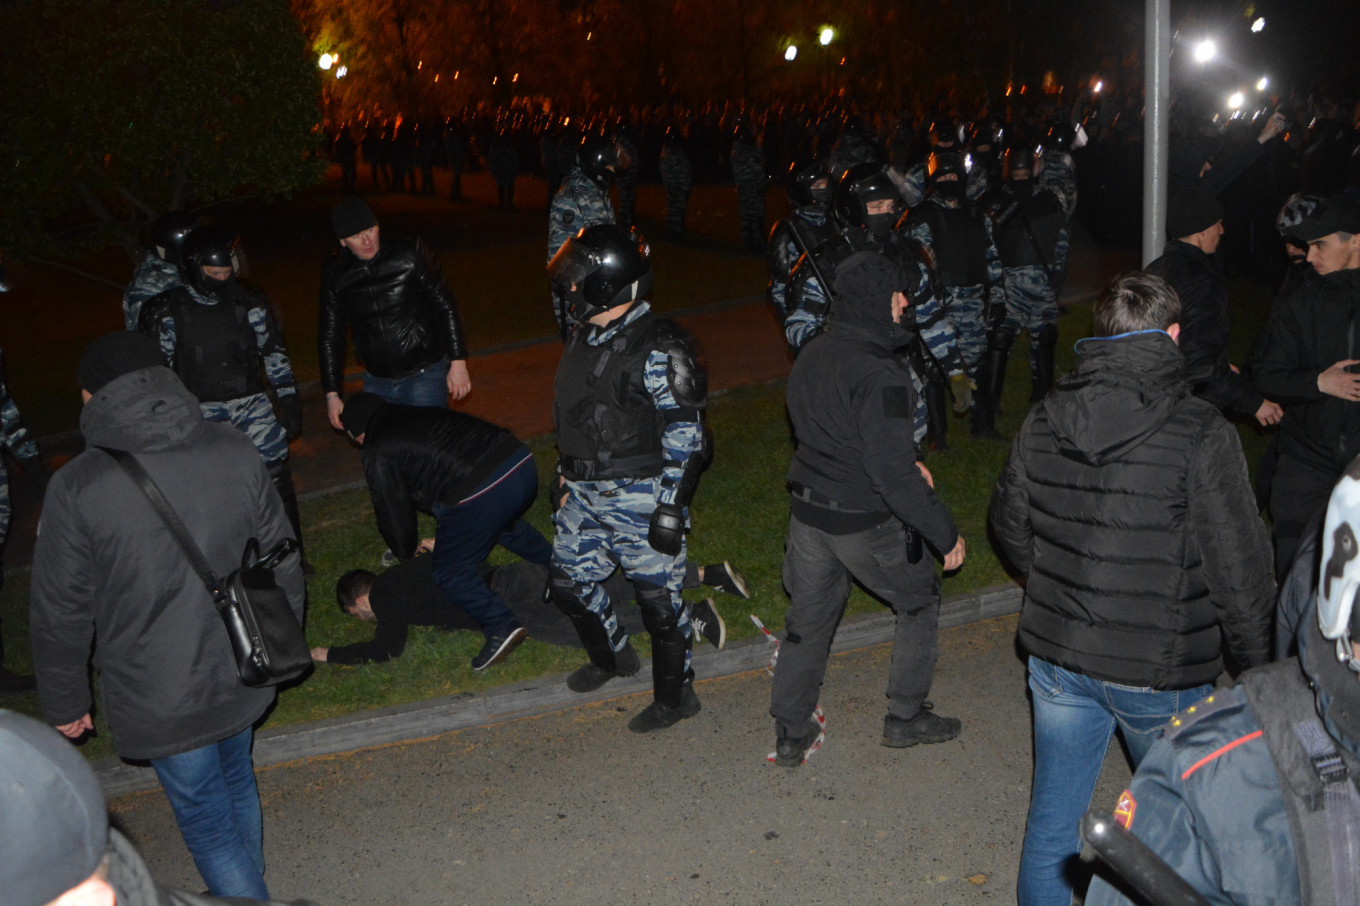 There were dozens of arrests and detentions. Ivan Zhilin